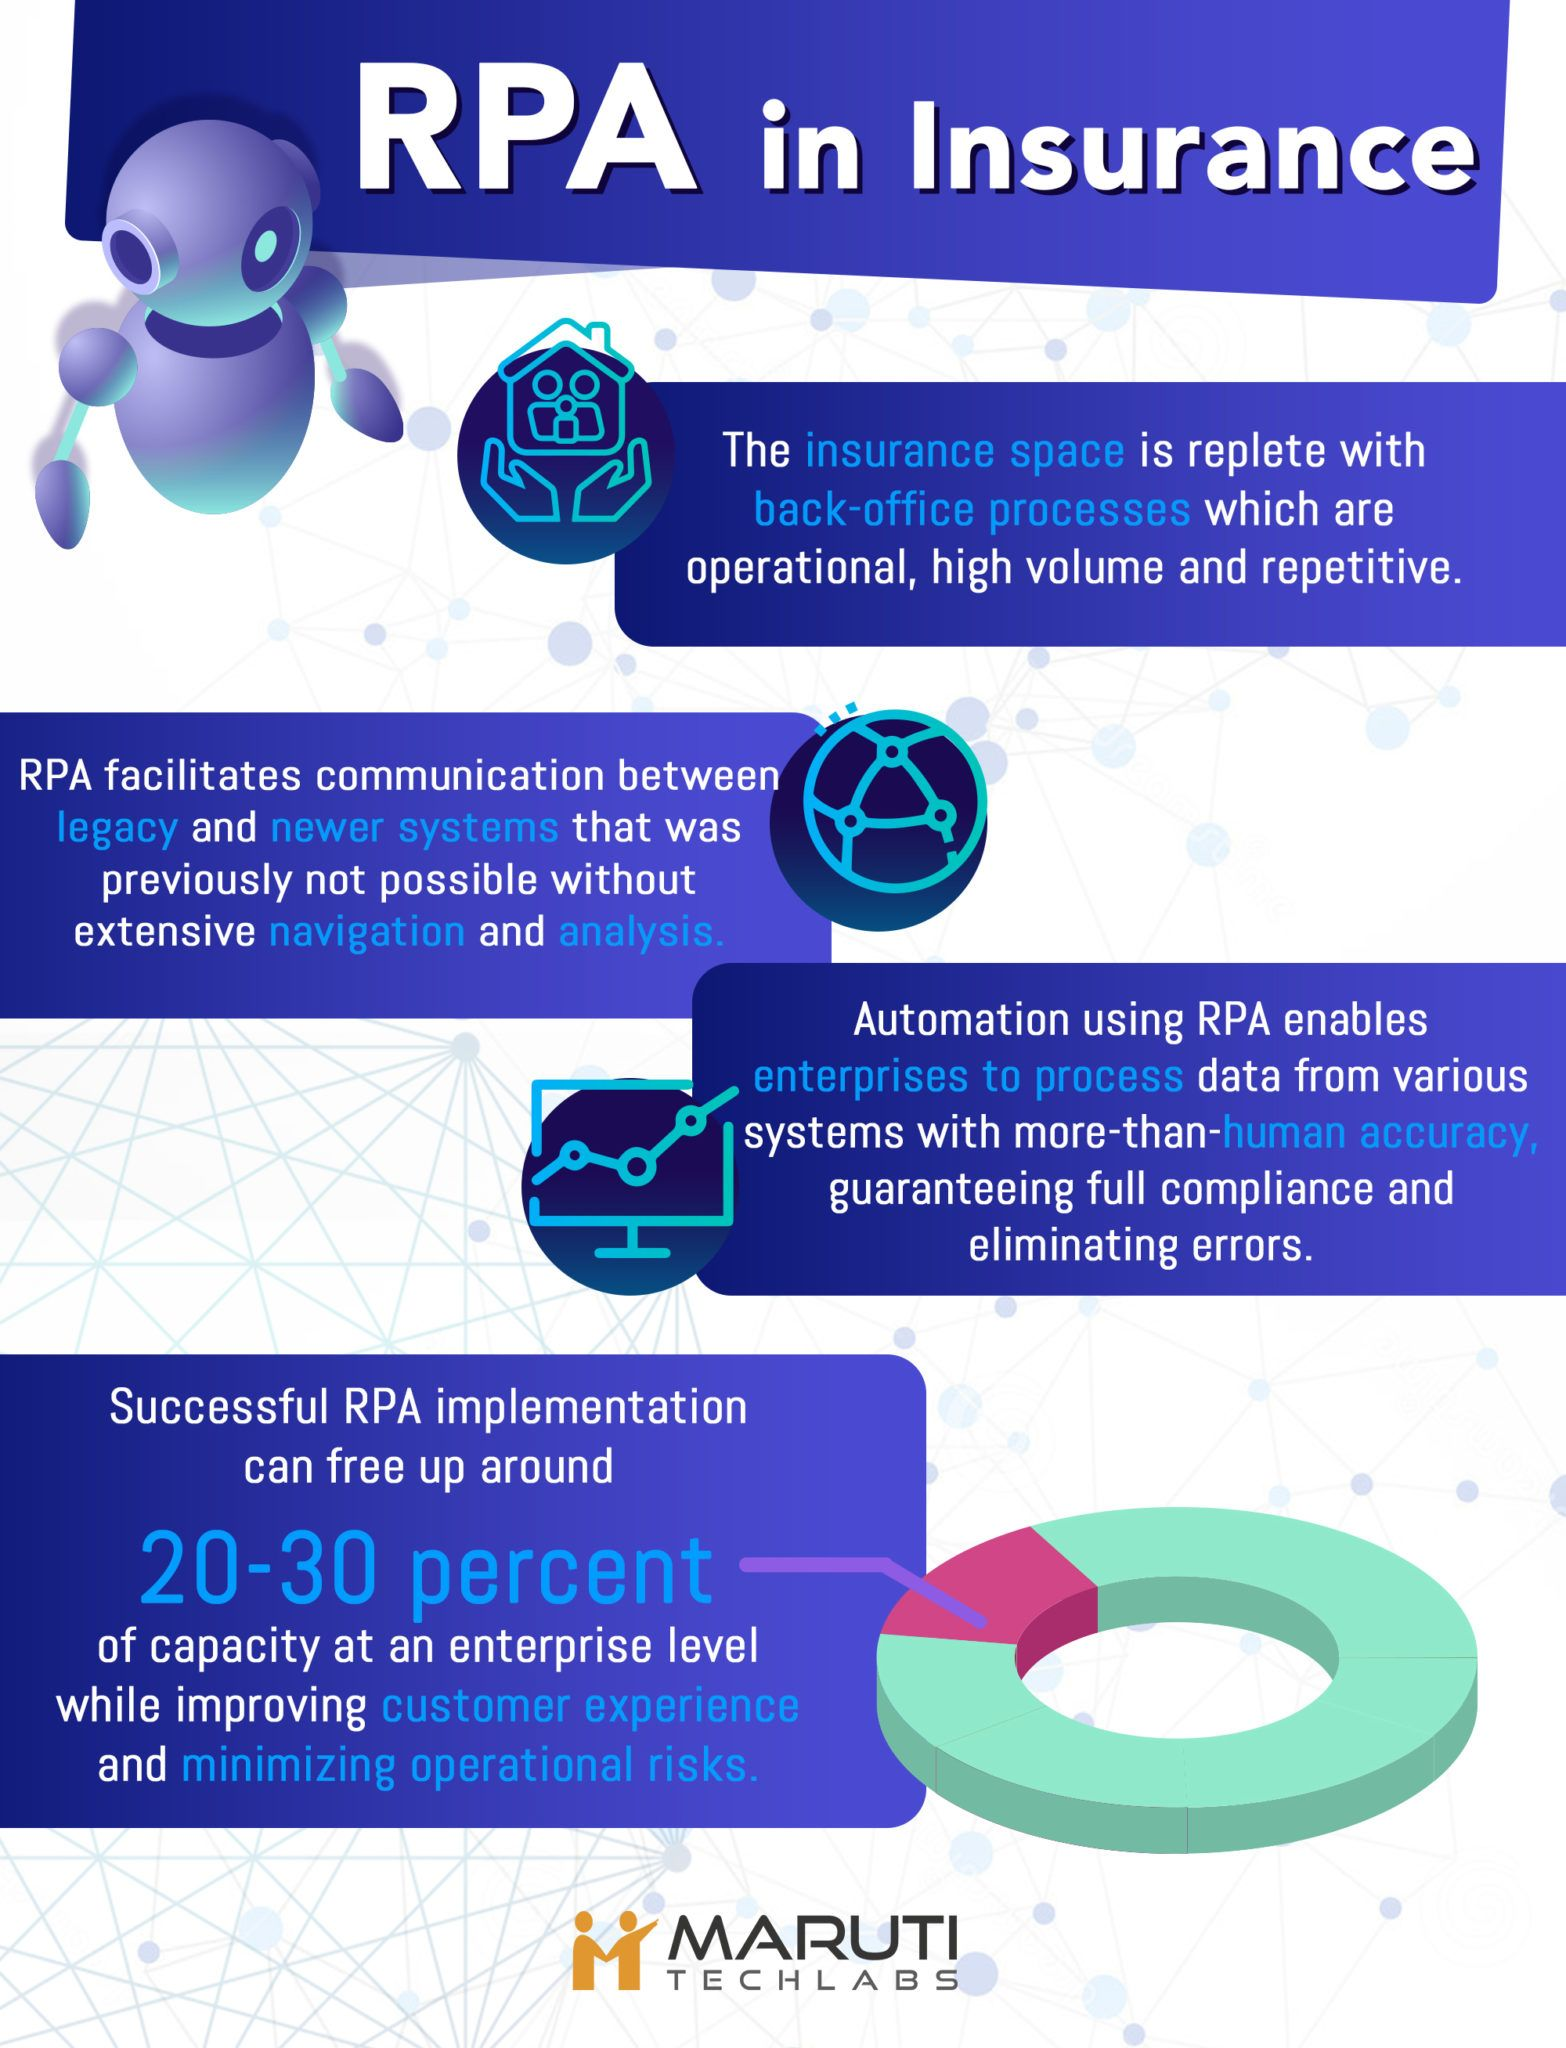 Rpa In Insurance Top Use Cases Benefits Robotic Automation Clerical Jobs Business Mission